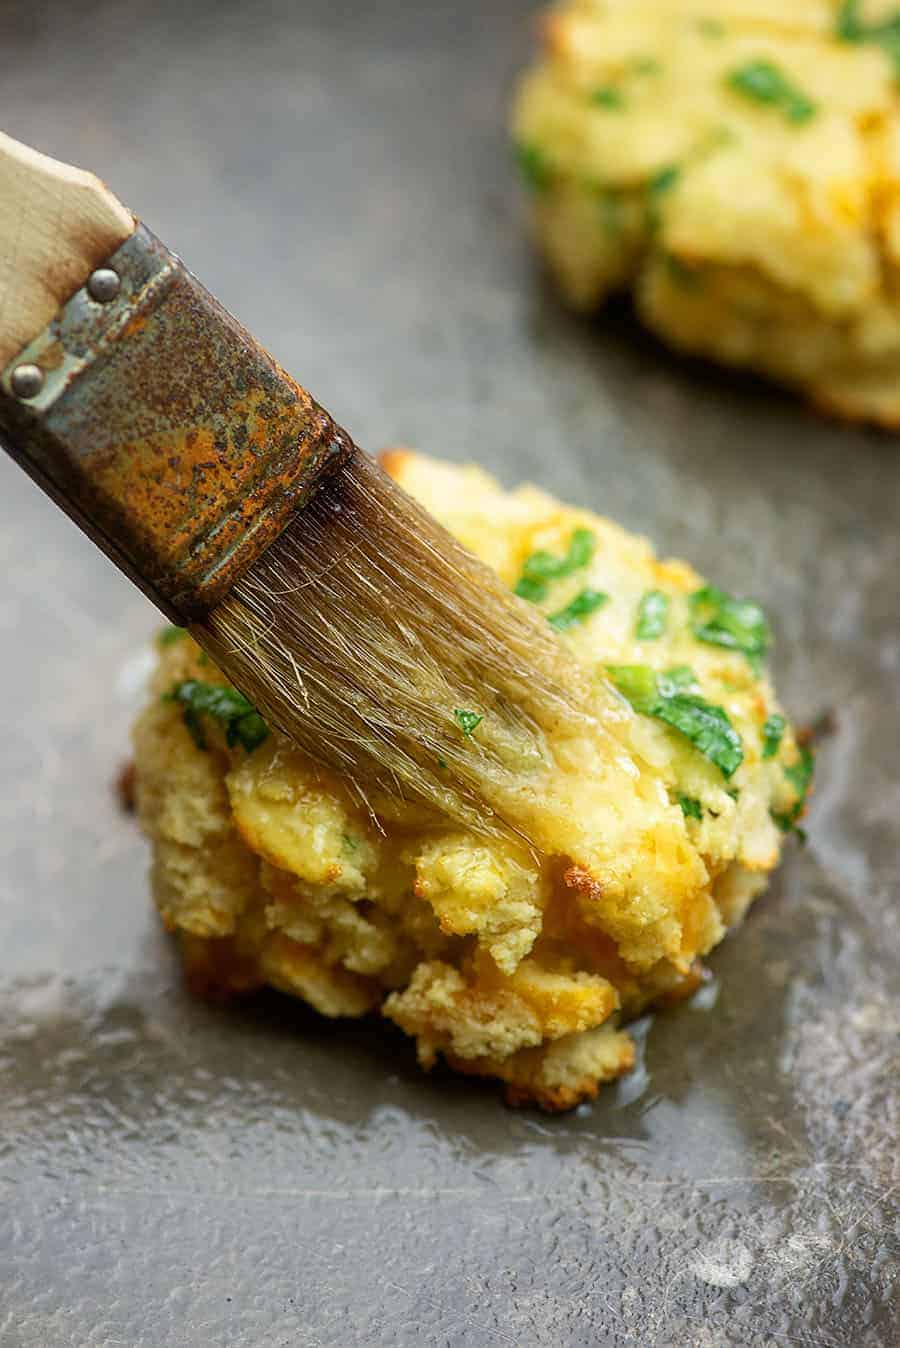 brushing butter on a cheddar biscuit